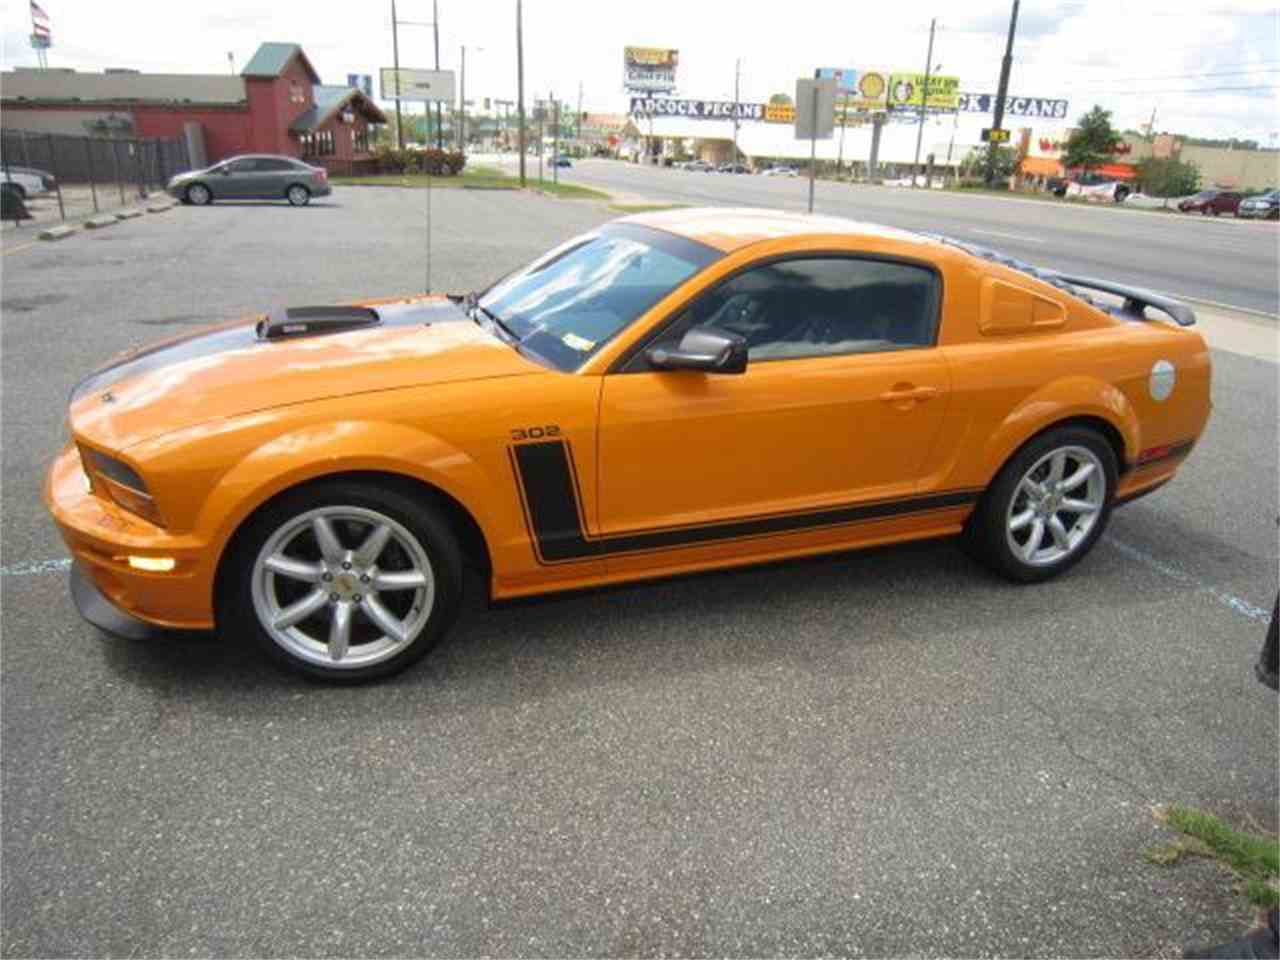 Large Picture of 2007 Mustang Parnelli Jones Offered by Auto Quest Investment Cars - JFG5